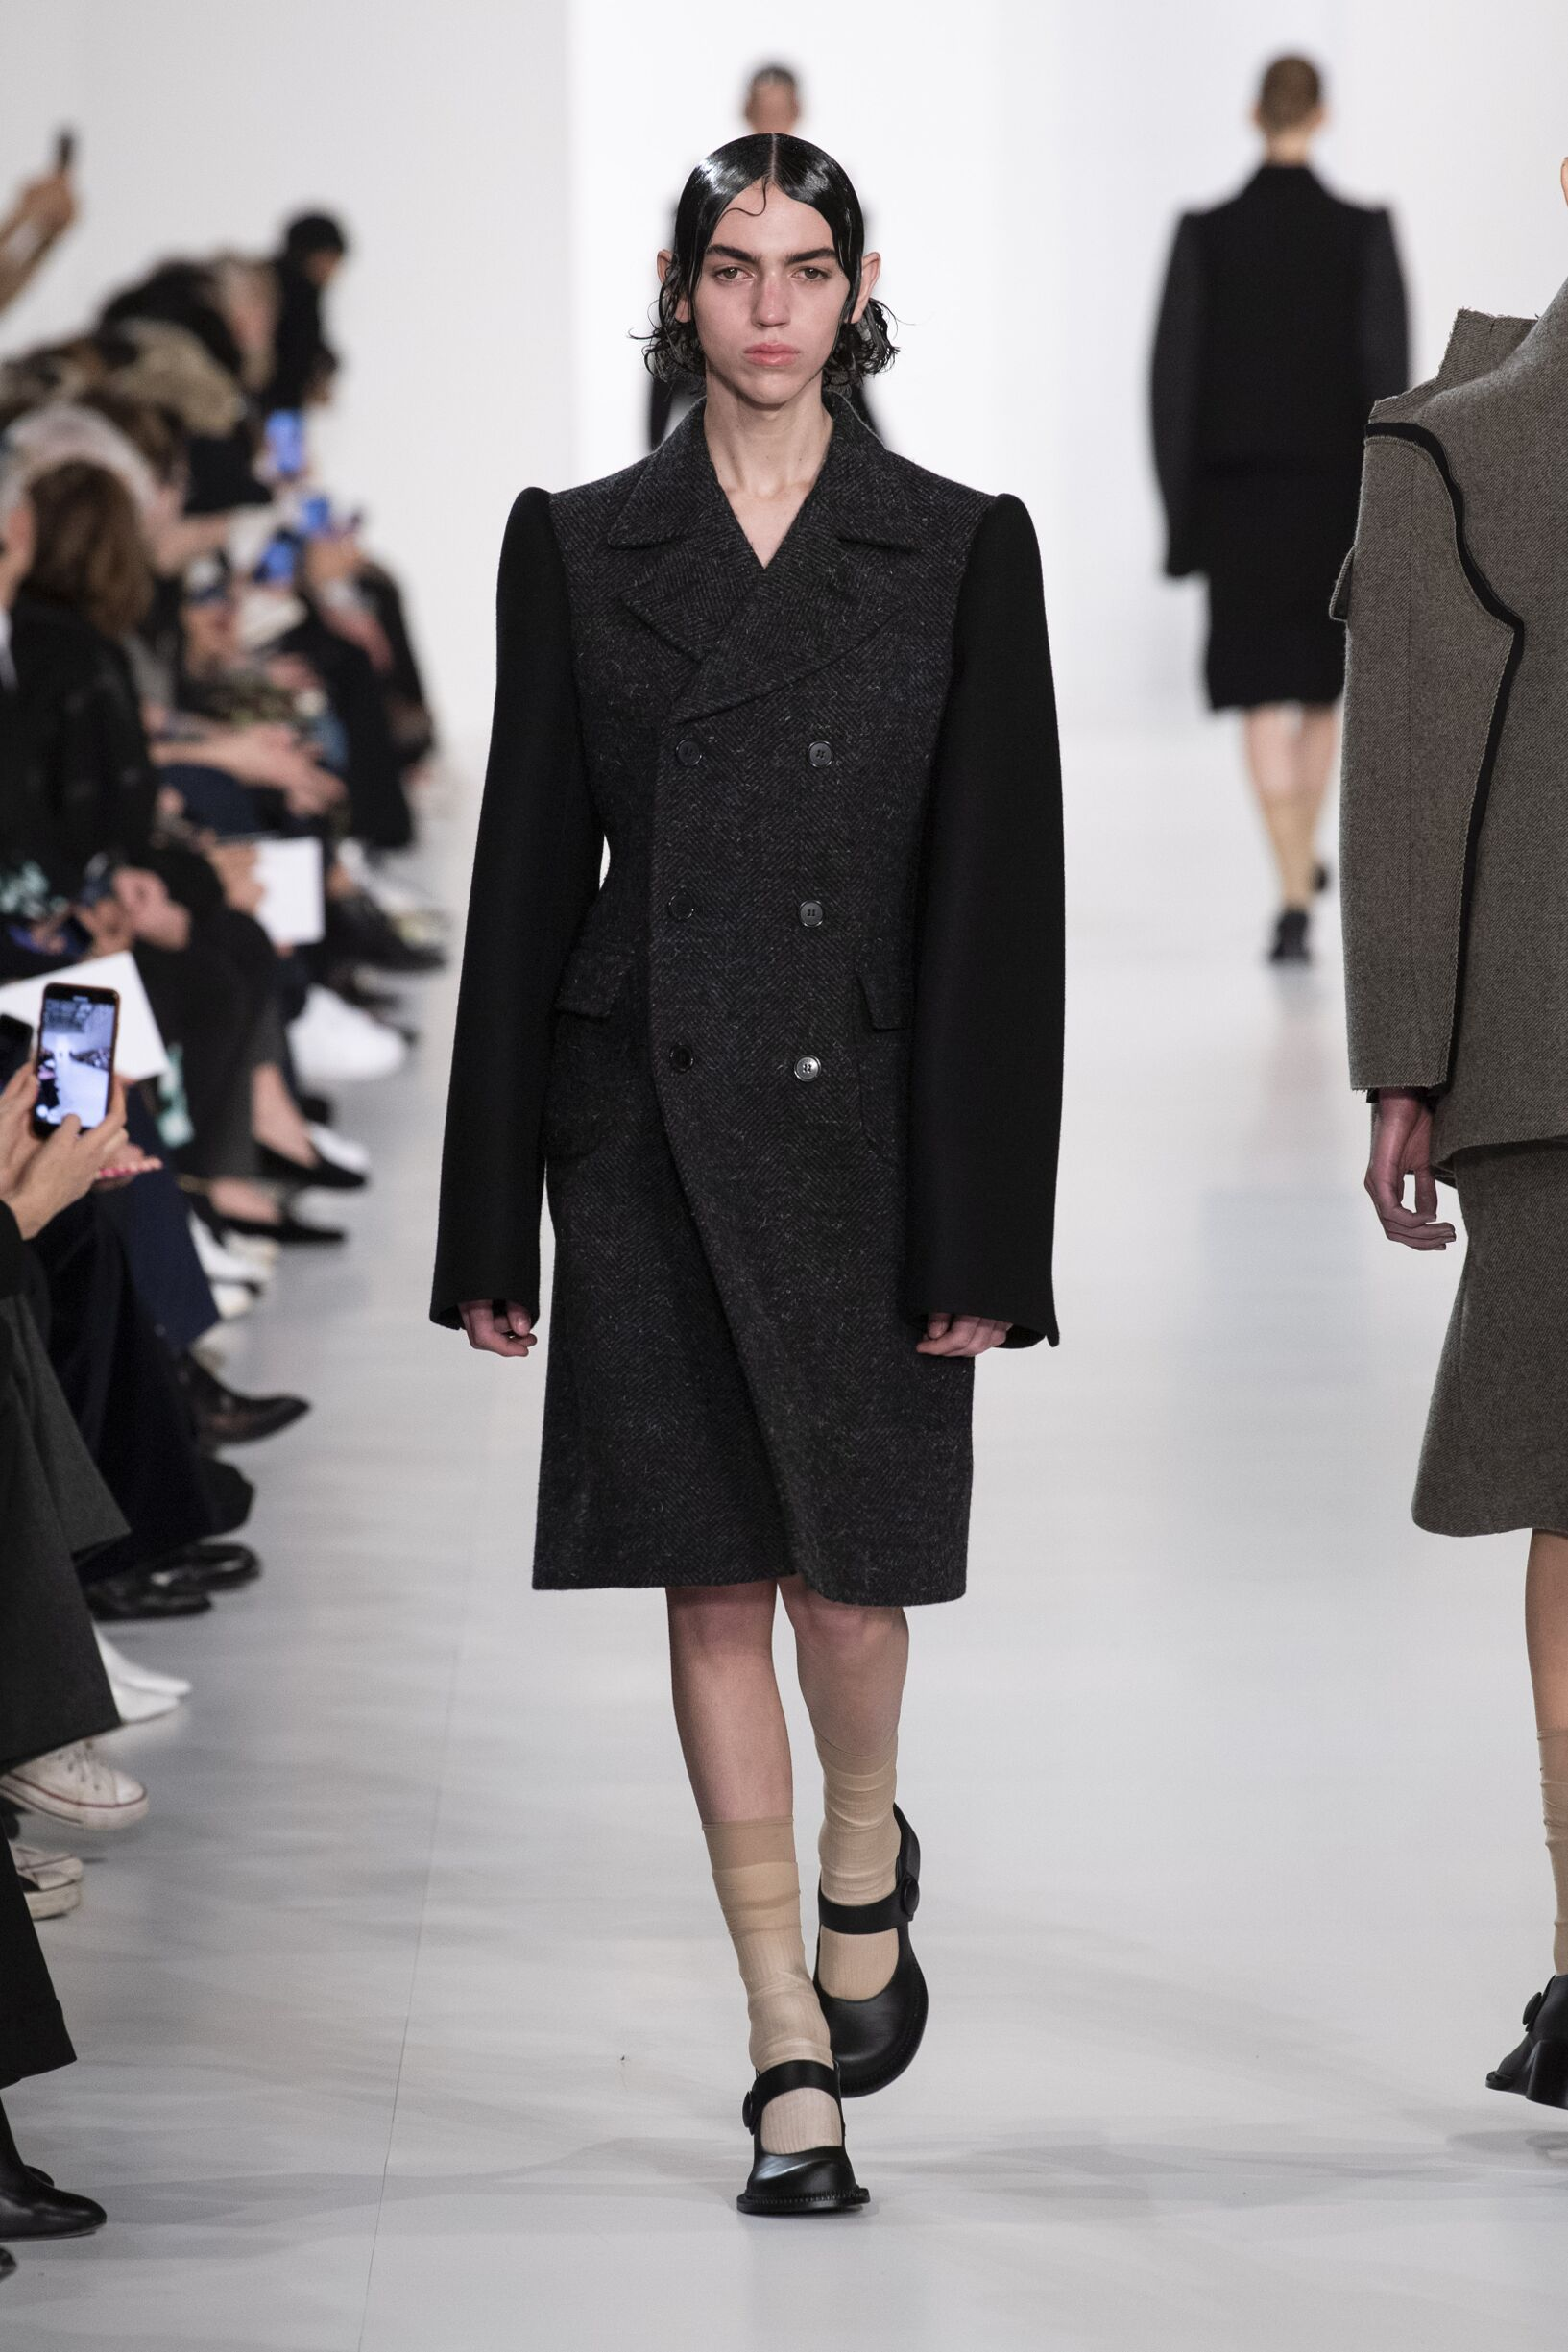 FW 2019-20 Fashion Show Maison Margiela